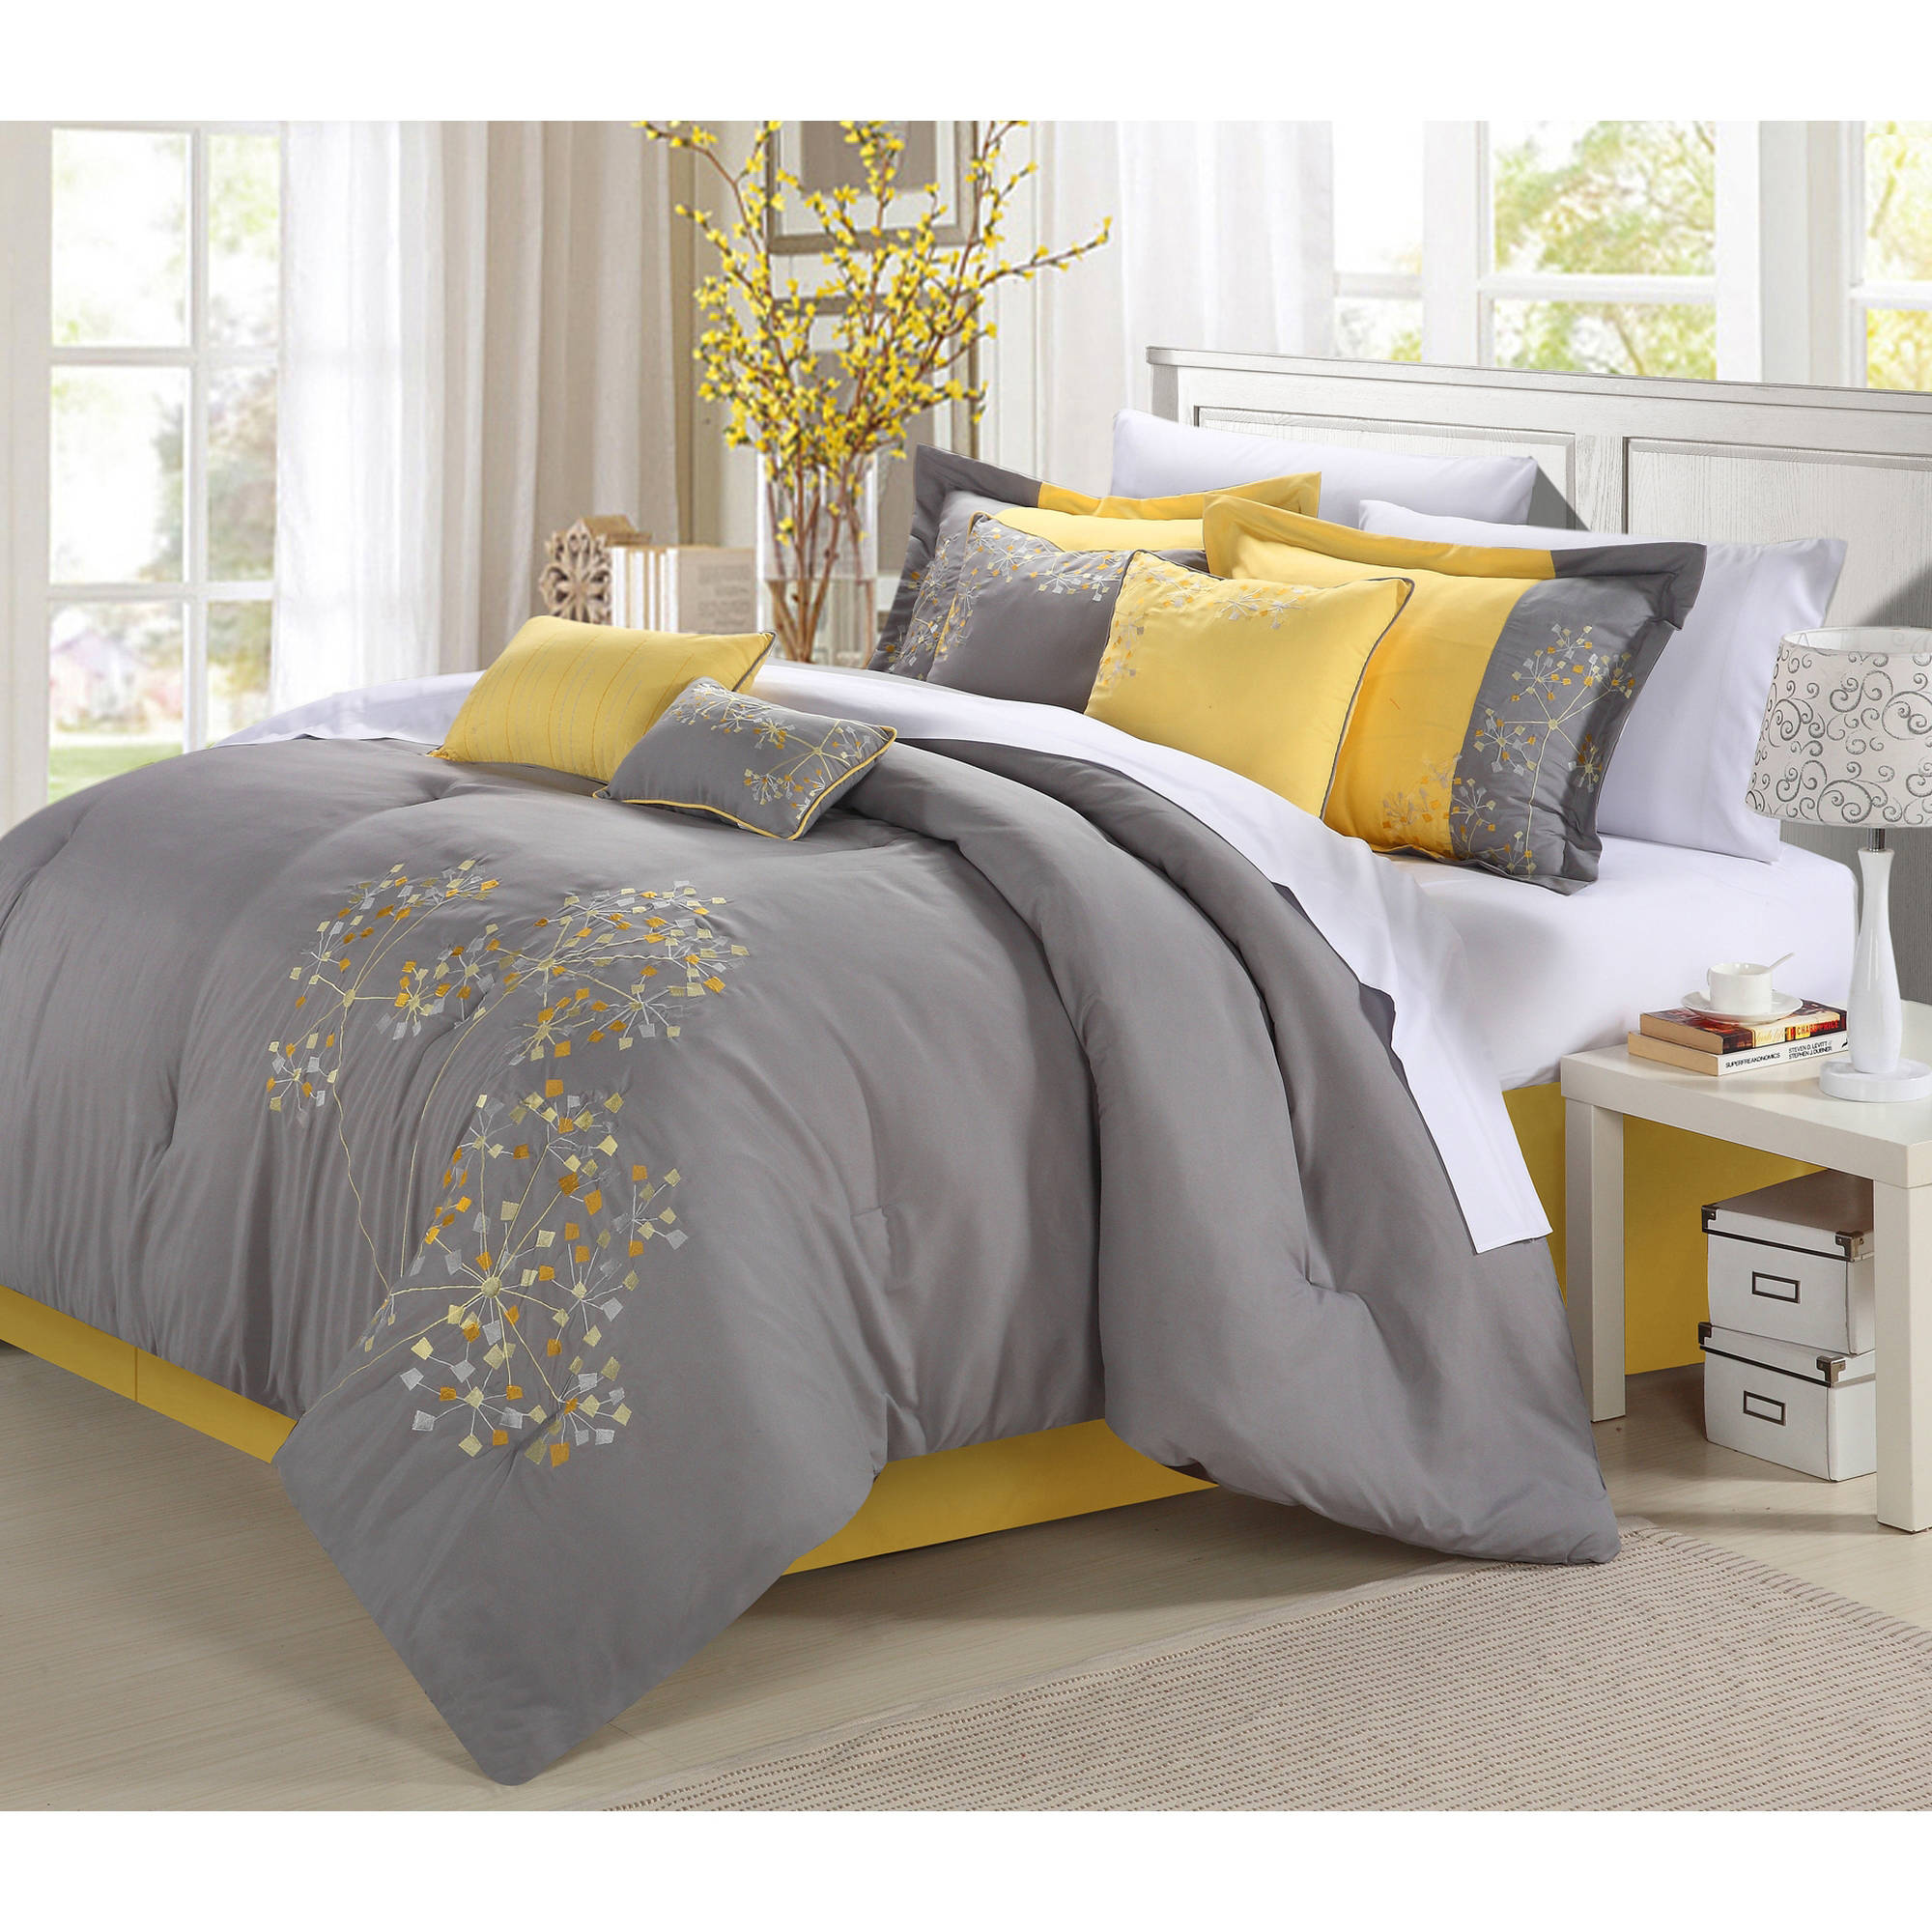 Petunia 12-Piece Bed in a Bag Bedding Comforter Set